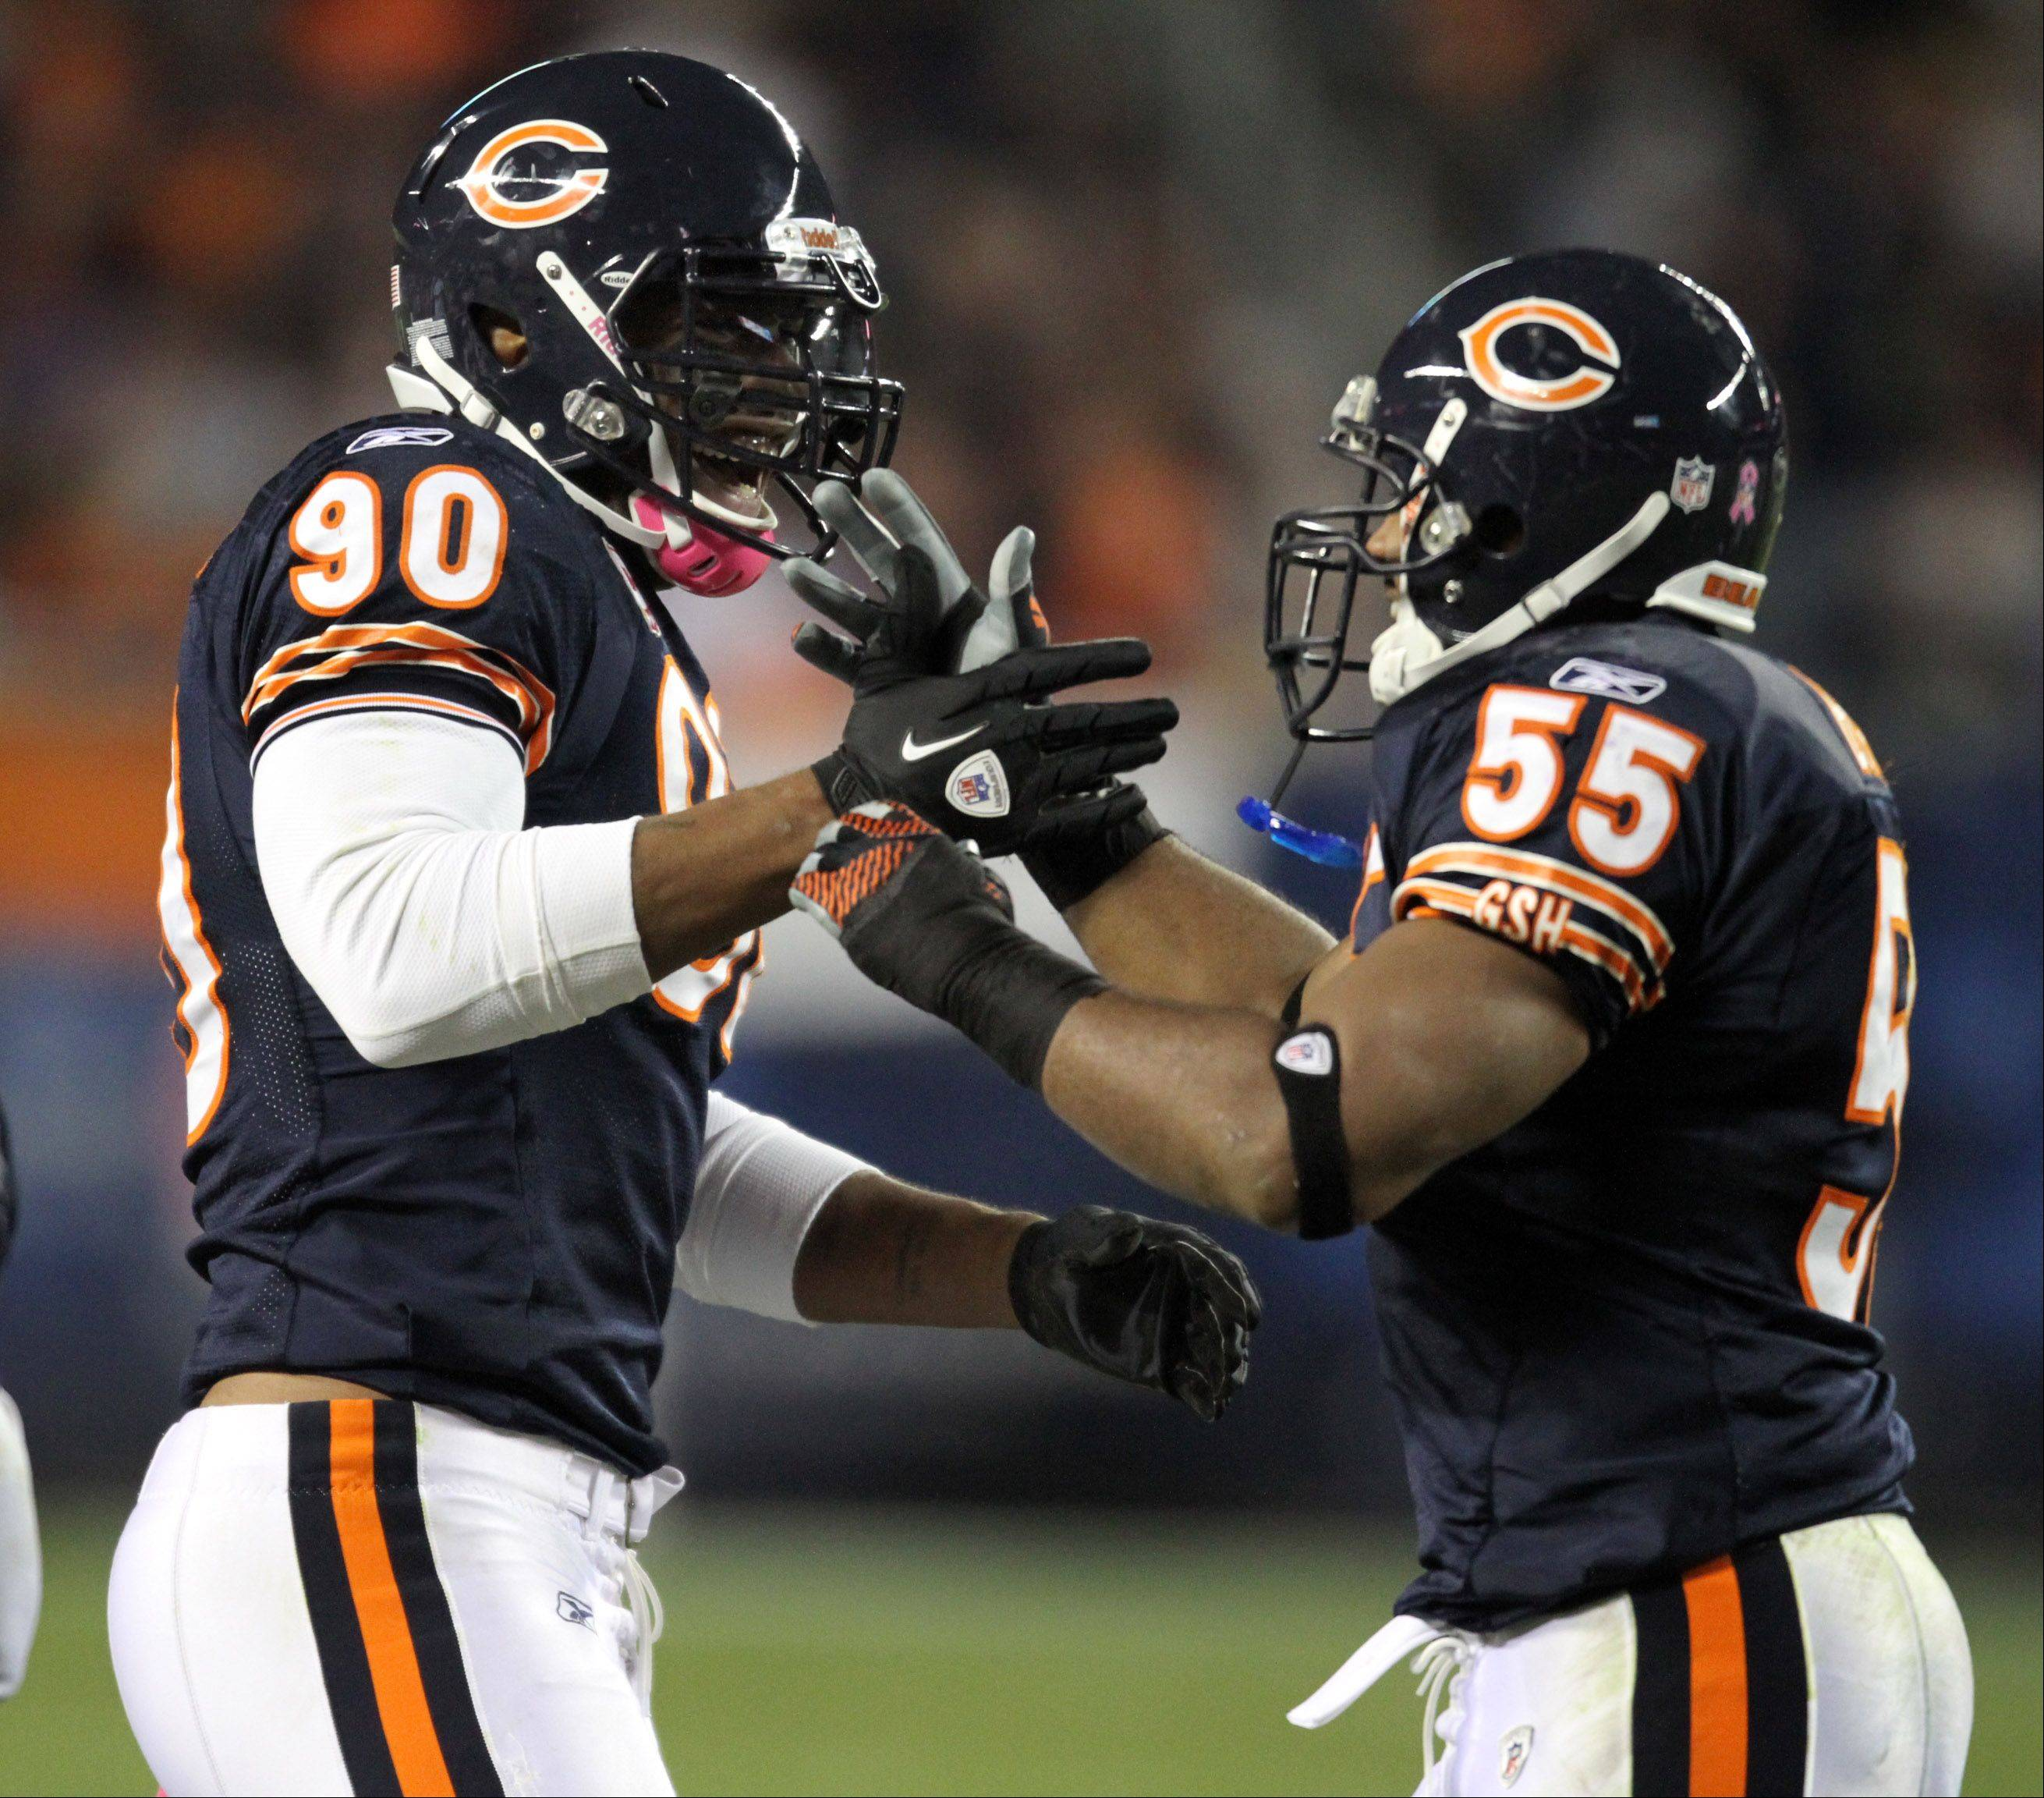 Without Urlacher, Briggs ready for more responsbility